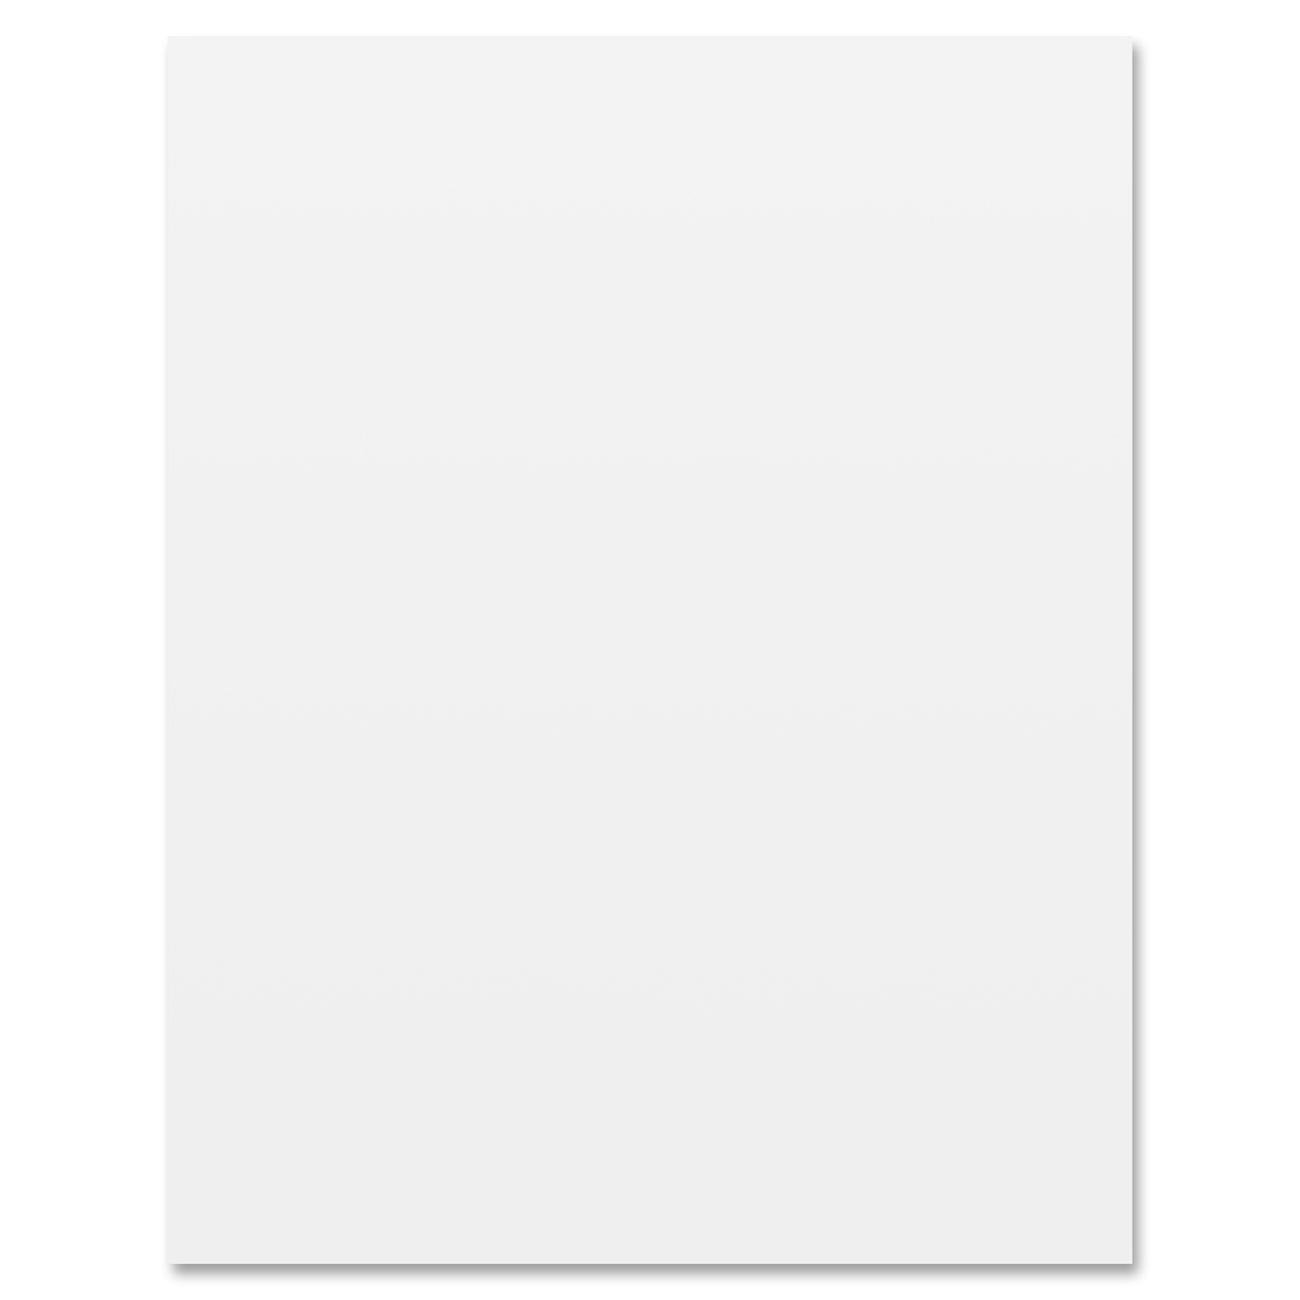 Letter Size Poster Board, 8.5x11